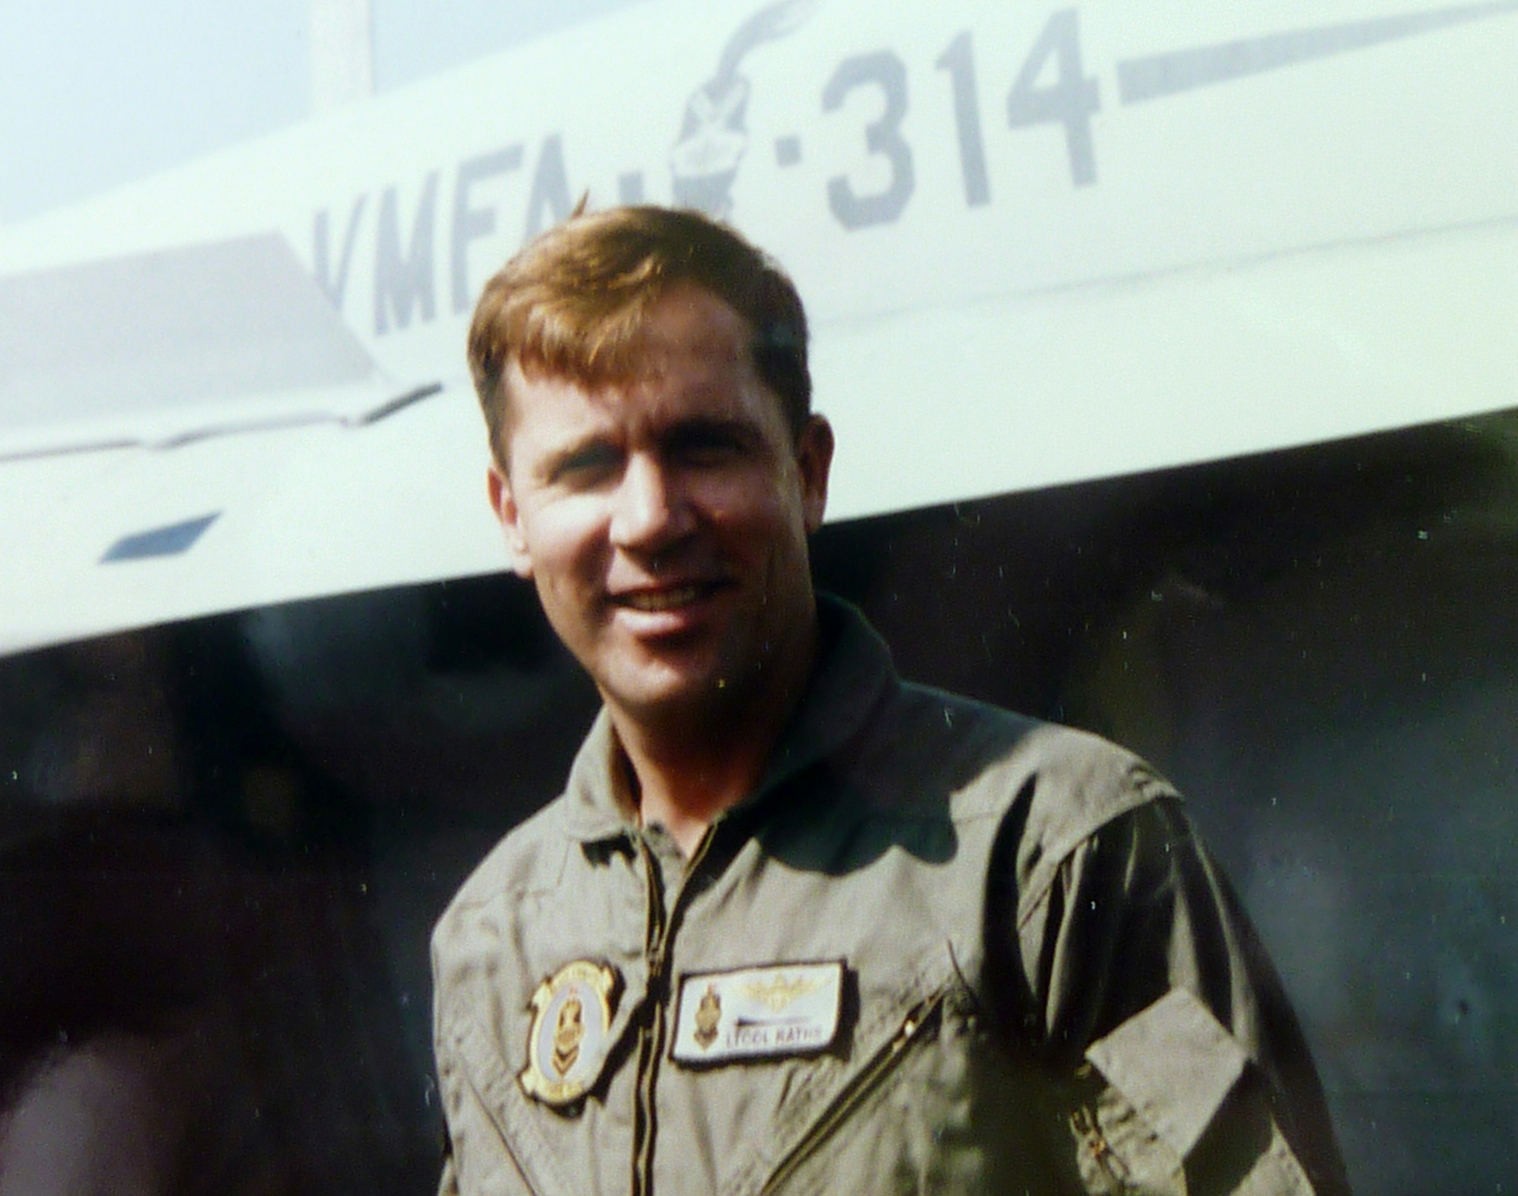 45._Cammanding_Officer_of_the_VMFA-314_Black_Knights__1993-94..jpg